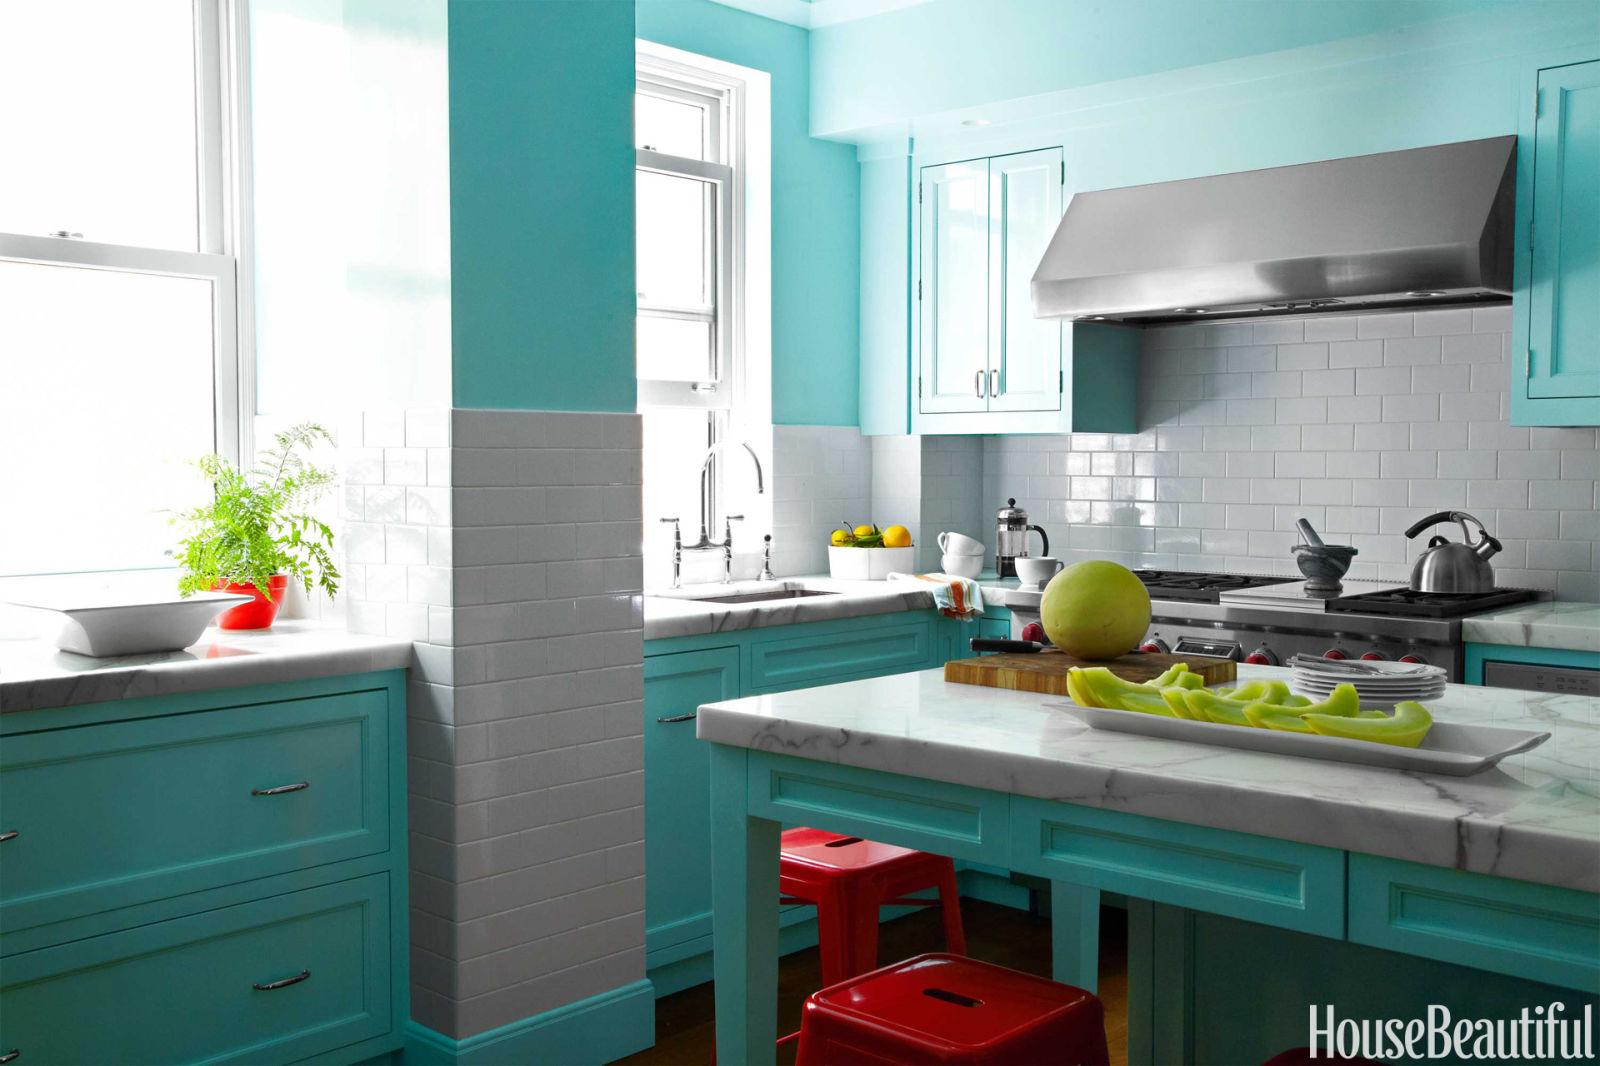 Robins Kitchen Garden City Loveisspeed Inside A Happy Family Home With Vivid Colors